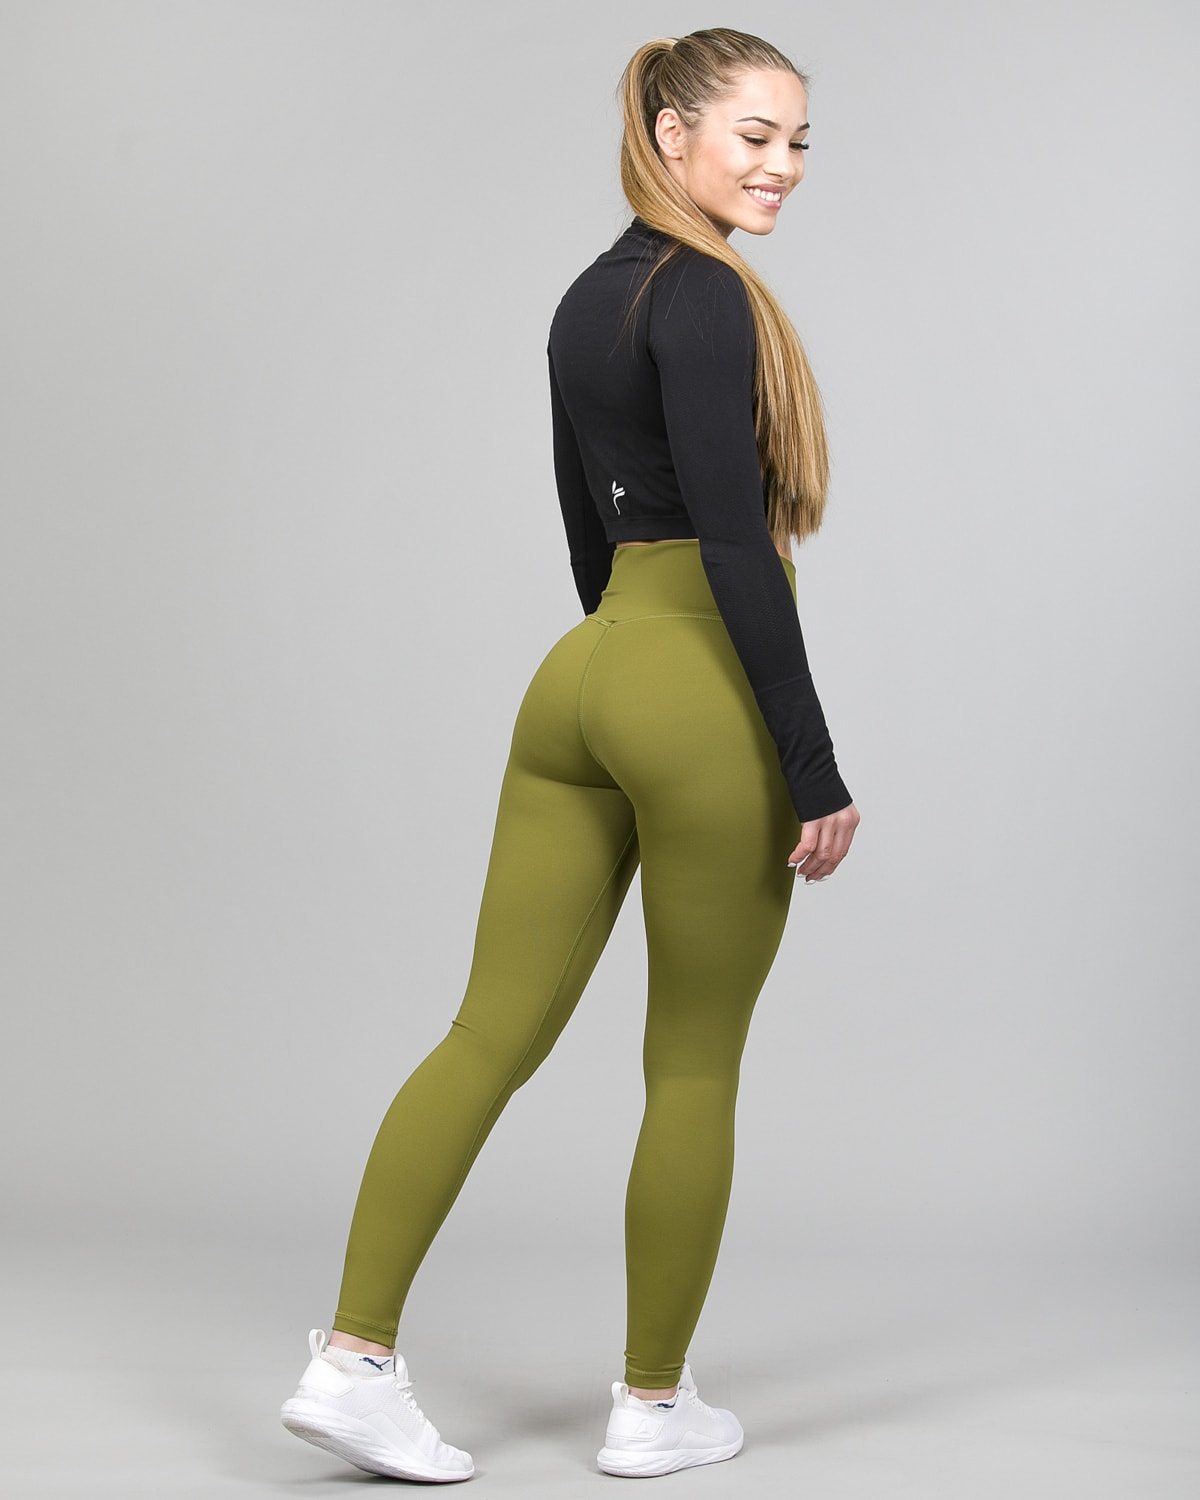 Famme Ocean Crop Top Black ocls-bk and Essential High Waist Leggings Forest Green ehwt-fg d